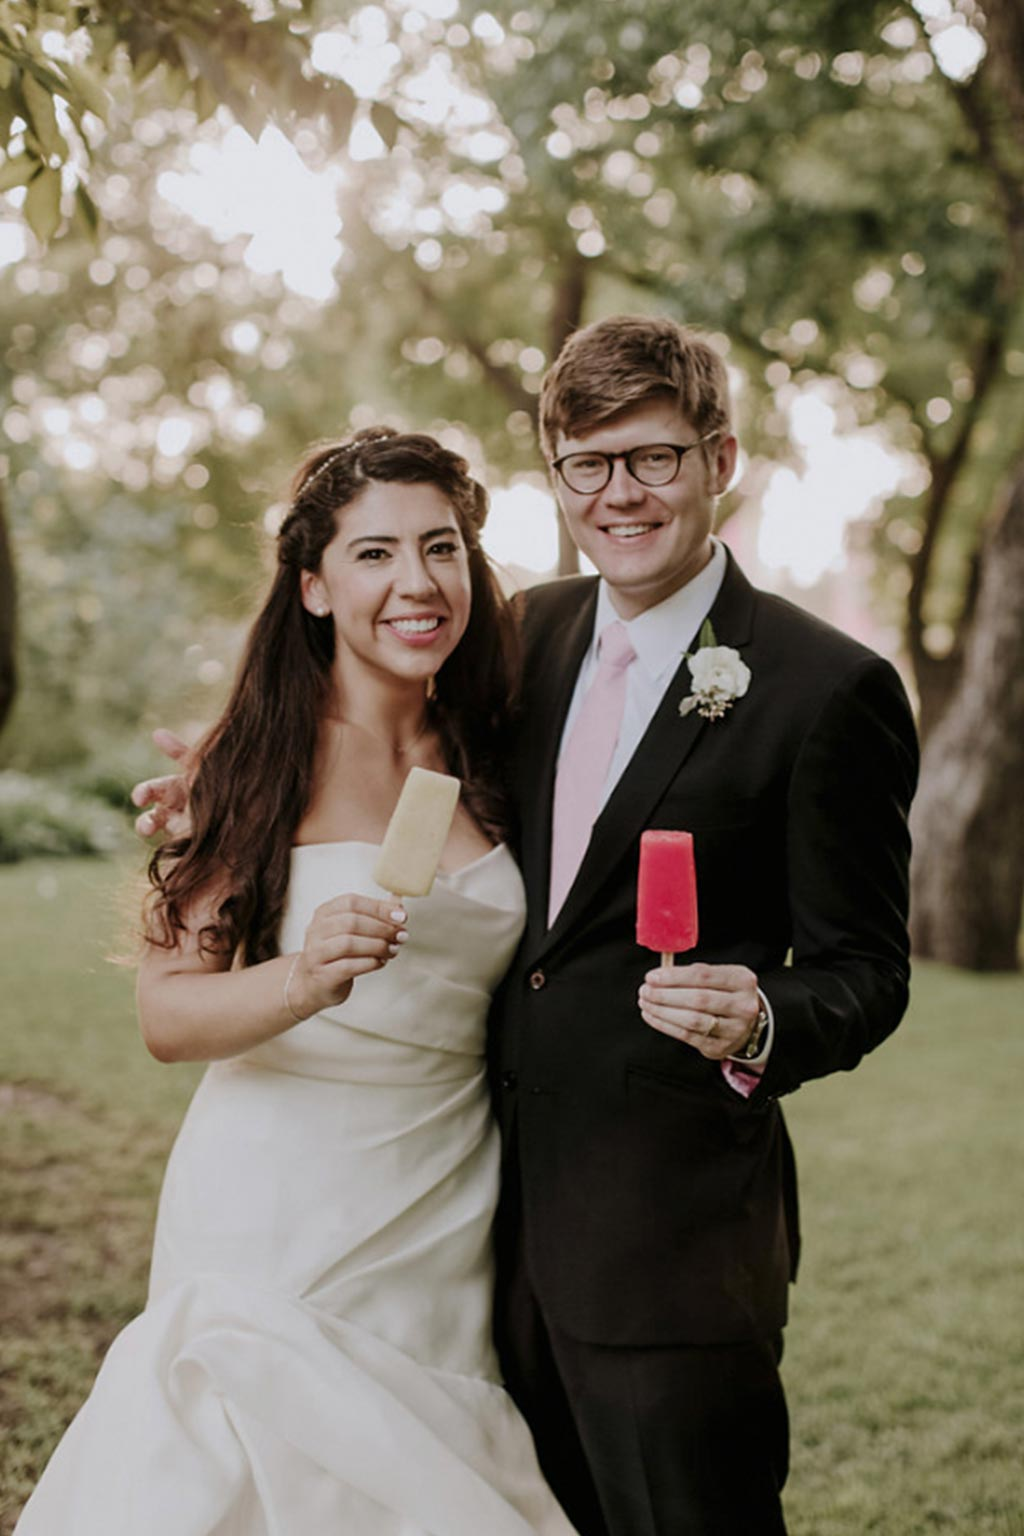 Bride and groom wedding portrait with Steel City Pops popsicles